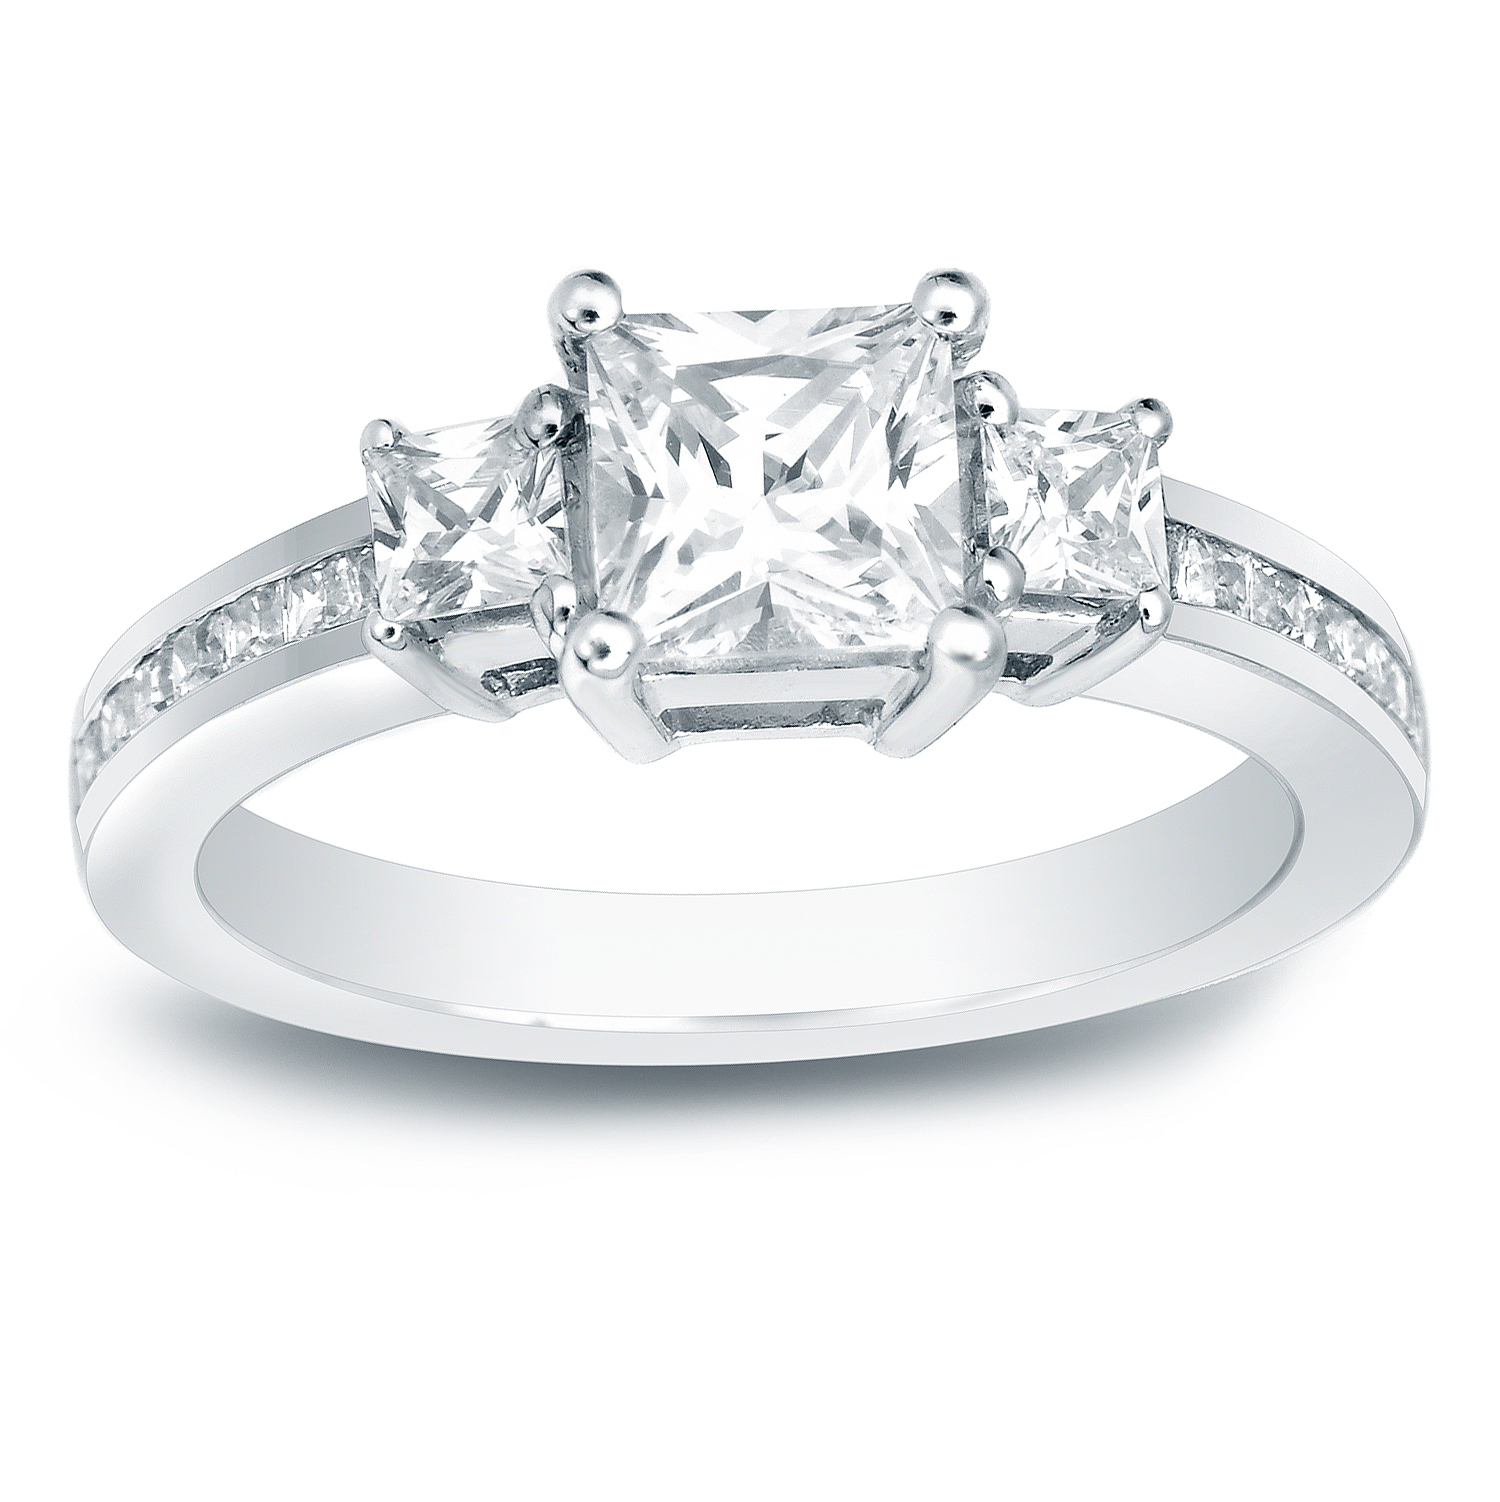 RYLEE Three Stone Engagement Ring In 14K White Gold